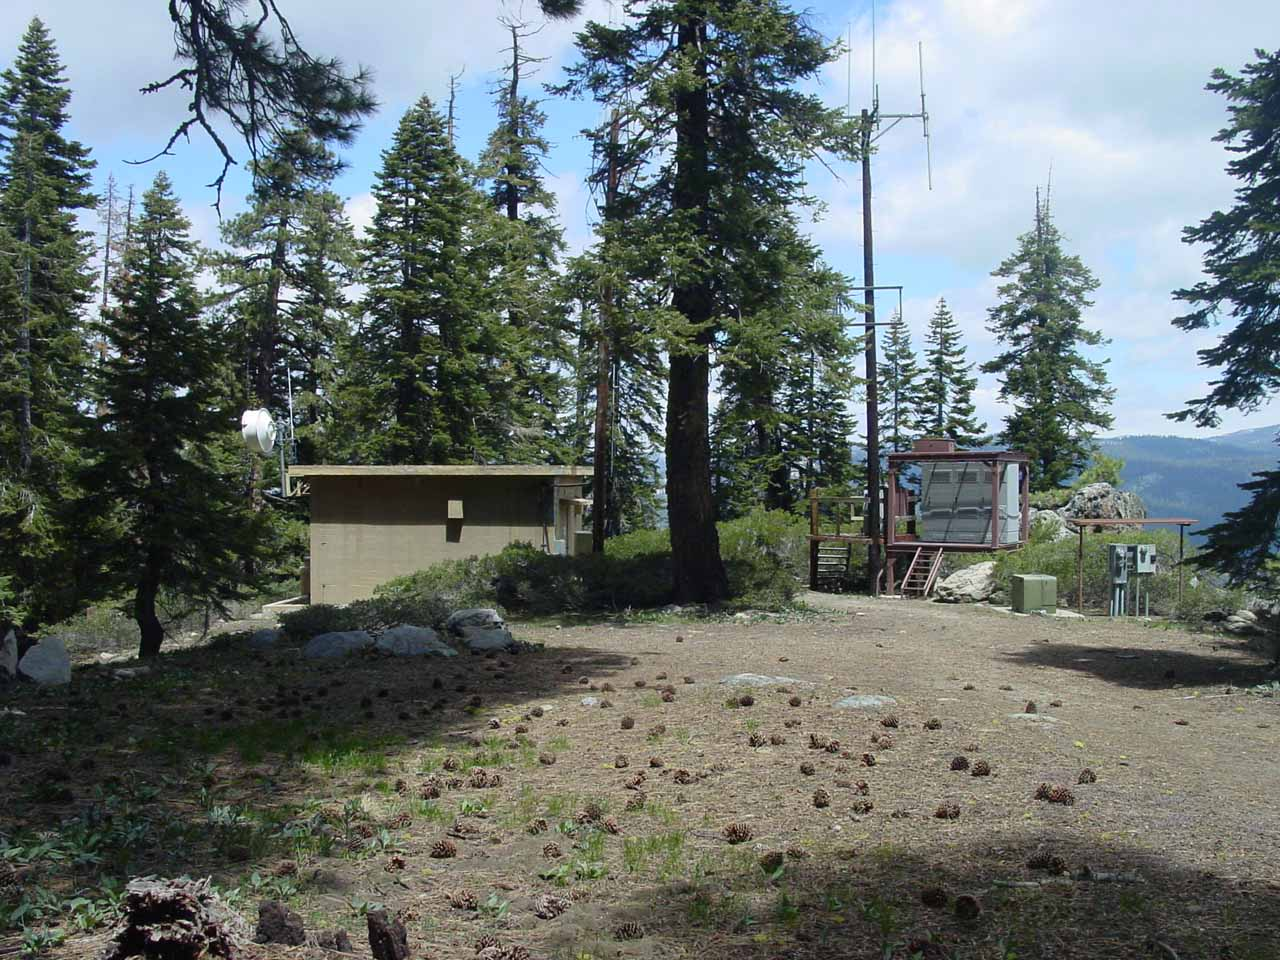 We spotted this repeater or tower or something by the Pohono Trail between the Sentinel Dome and Taft Point Trails